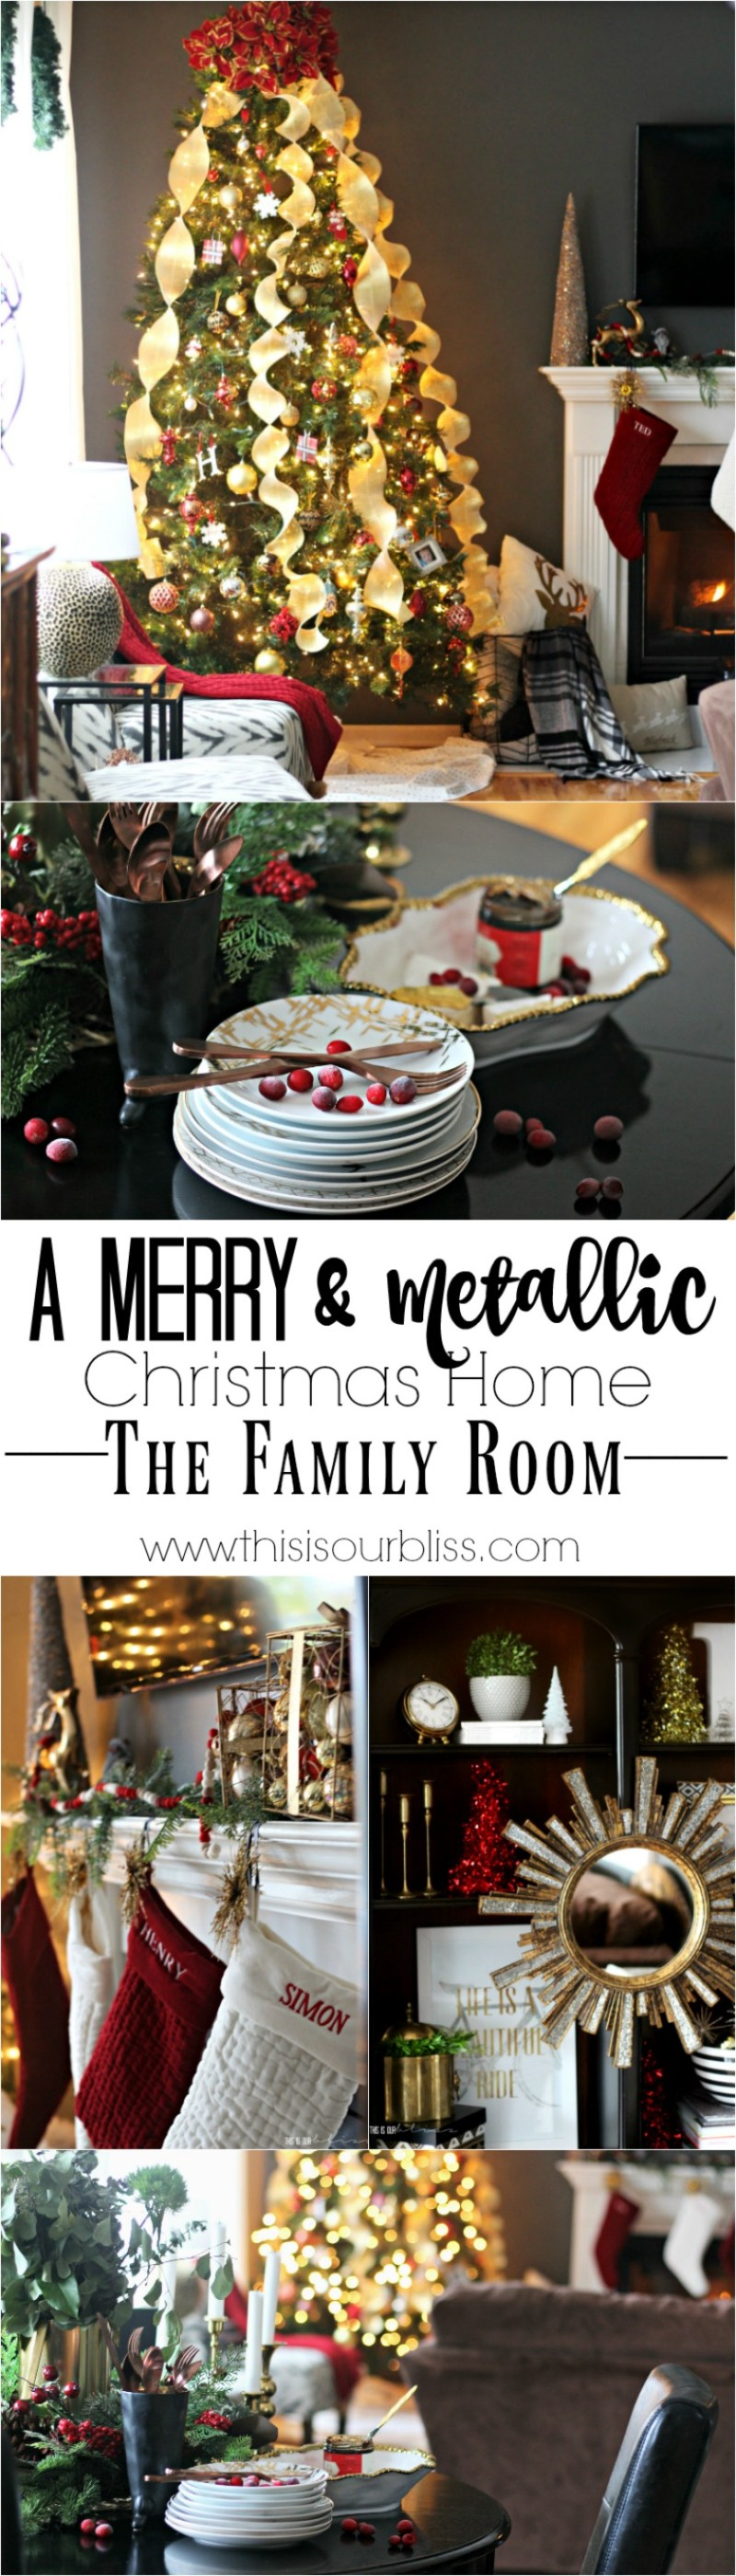 A Merry & Metallic Christmas Home | The Red white and Metallic Christmas Family Room | This is our Bliss Christmas Home Tour 2016